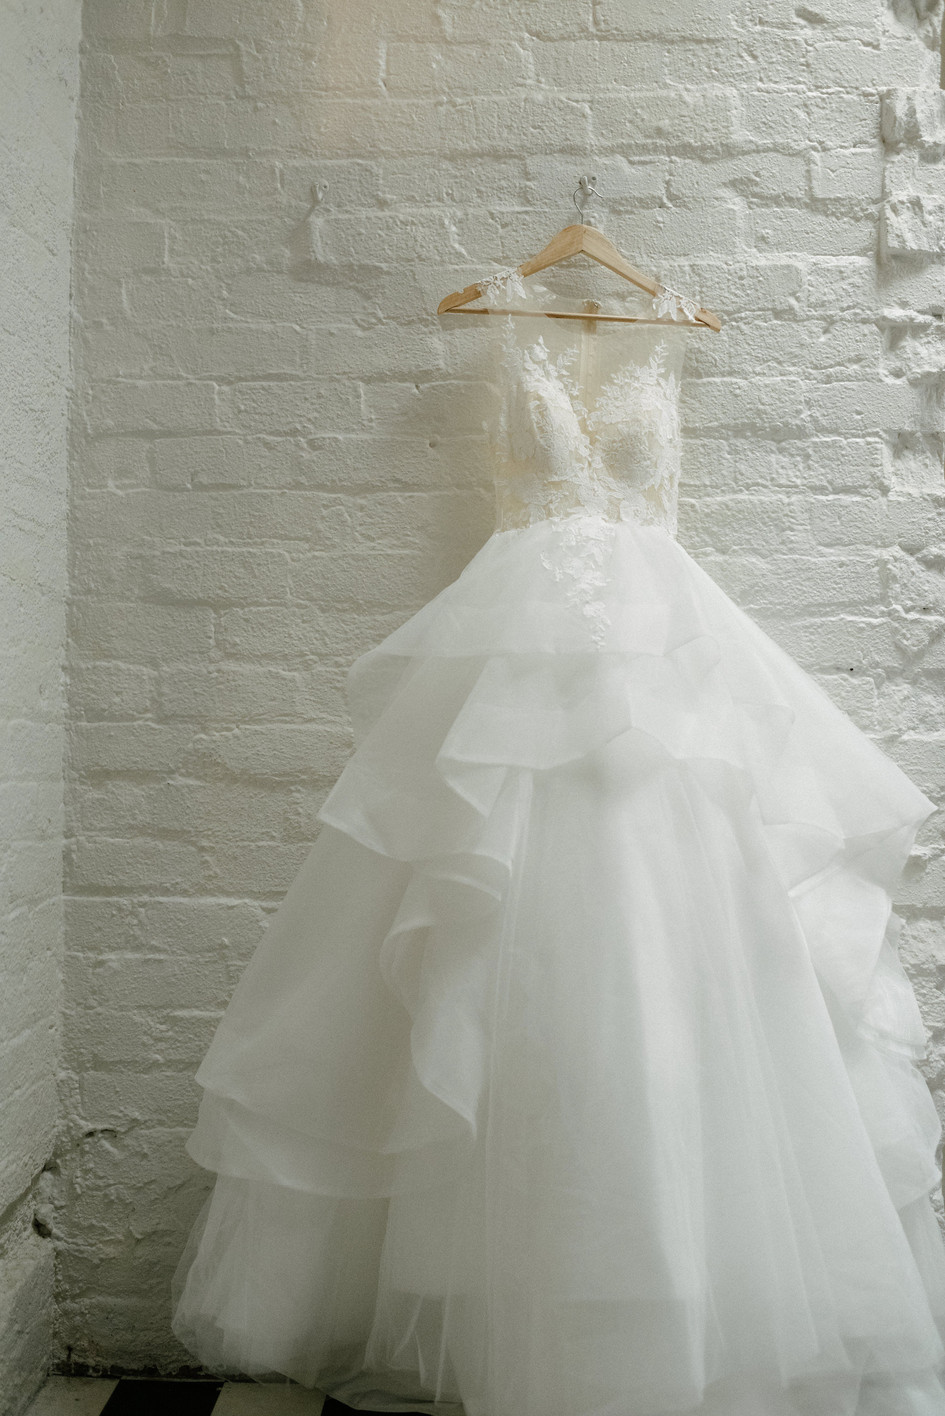 wedding_gown_auckland.jpg